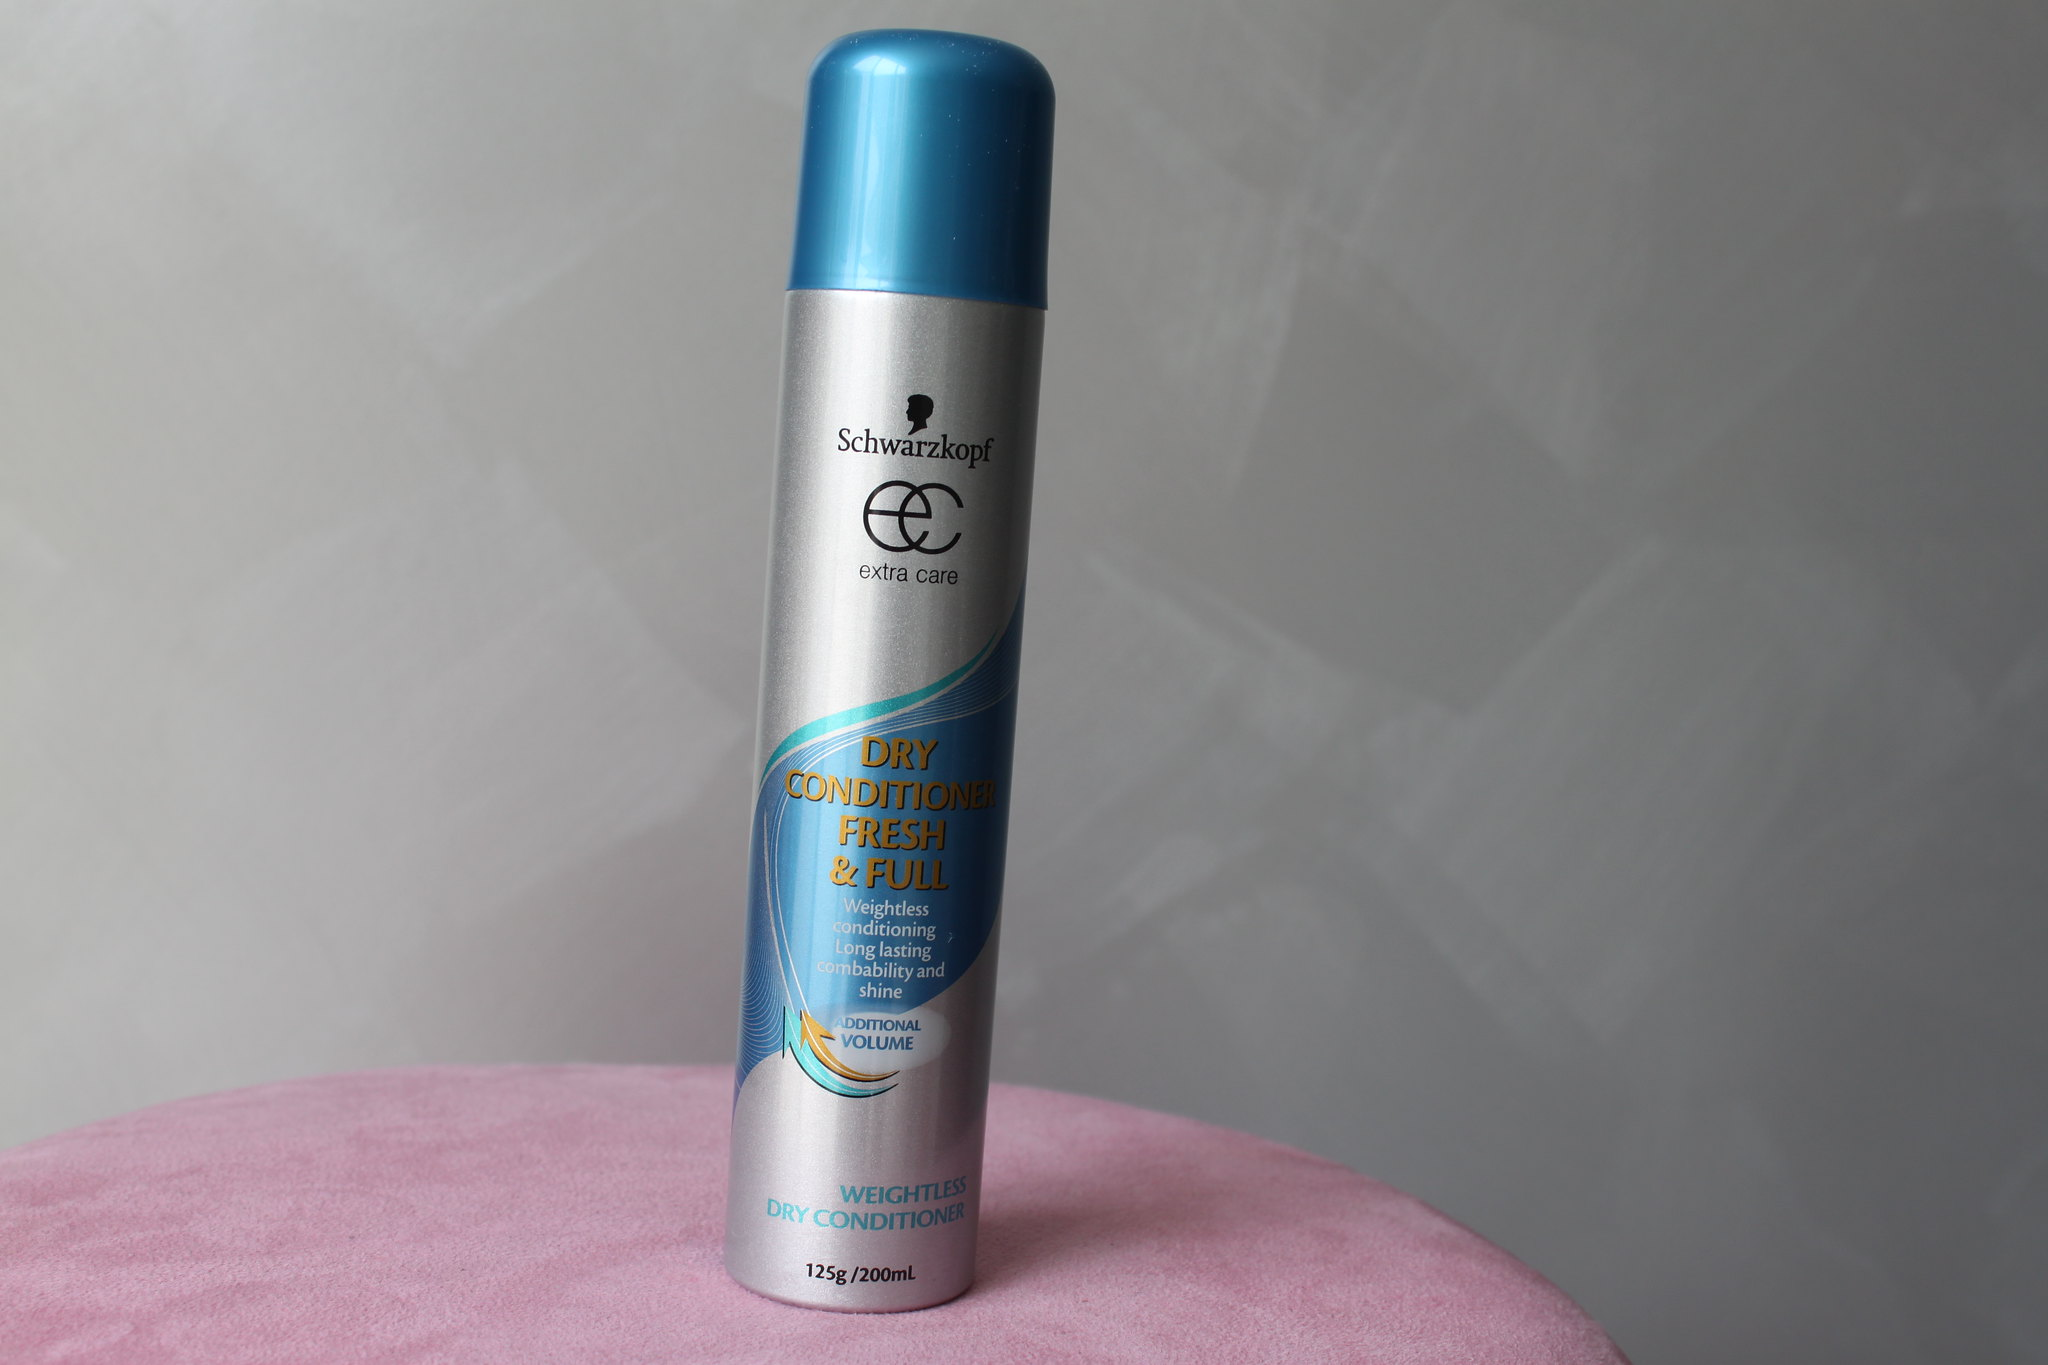 Schwarzkopf hair australian beauty review ausbeautyreview extra care dry conditioner fresh hair oil mist smooth shine argandaily weightless finish shampoo restyle healthyblogger blog priceline volume (4)